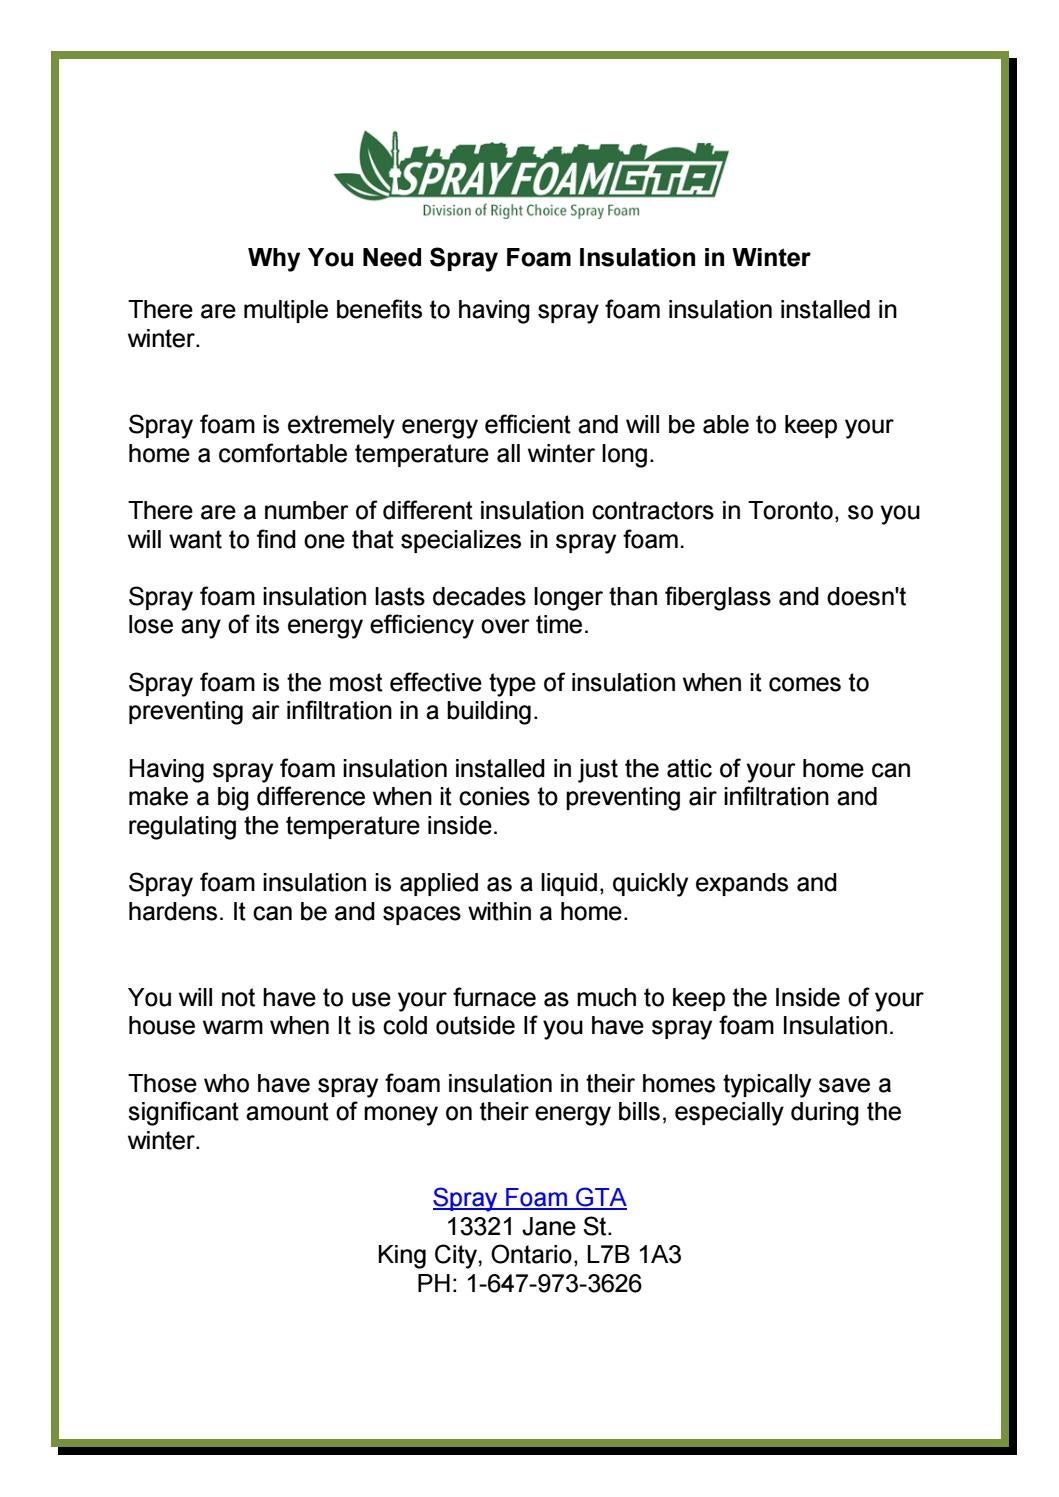 Why You Need Spray Foam Insulation in Winter by rubyquinn38